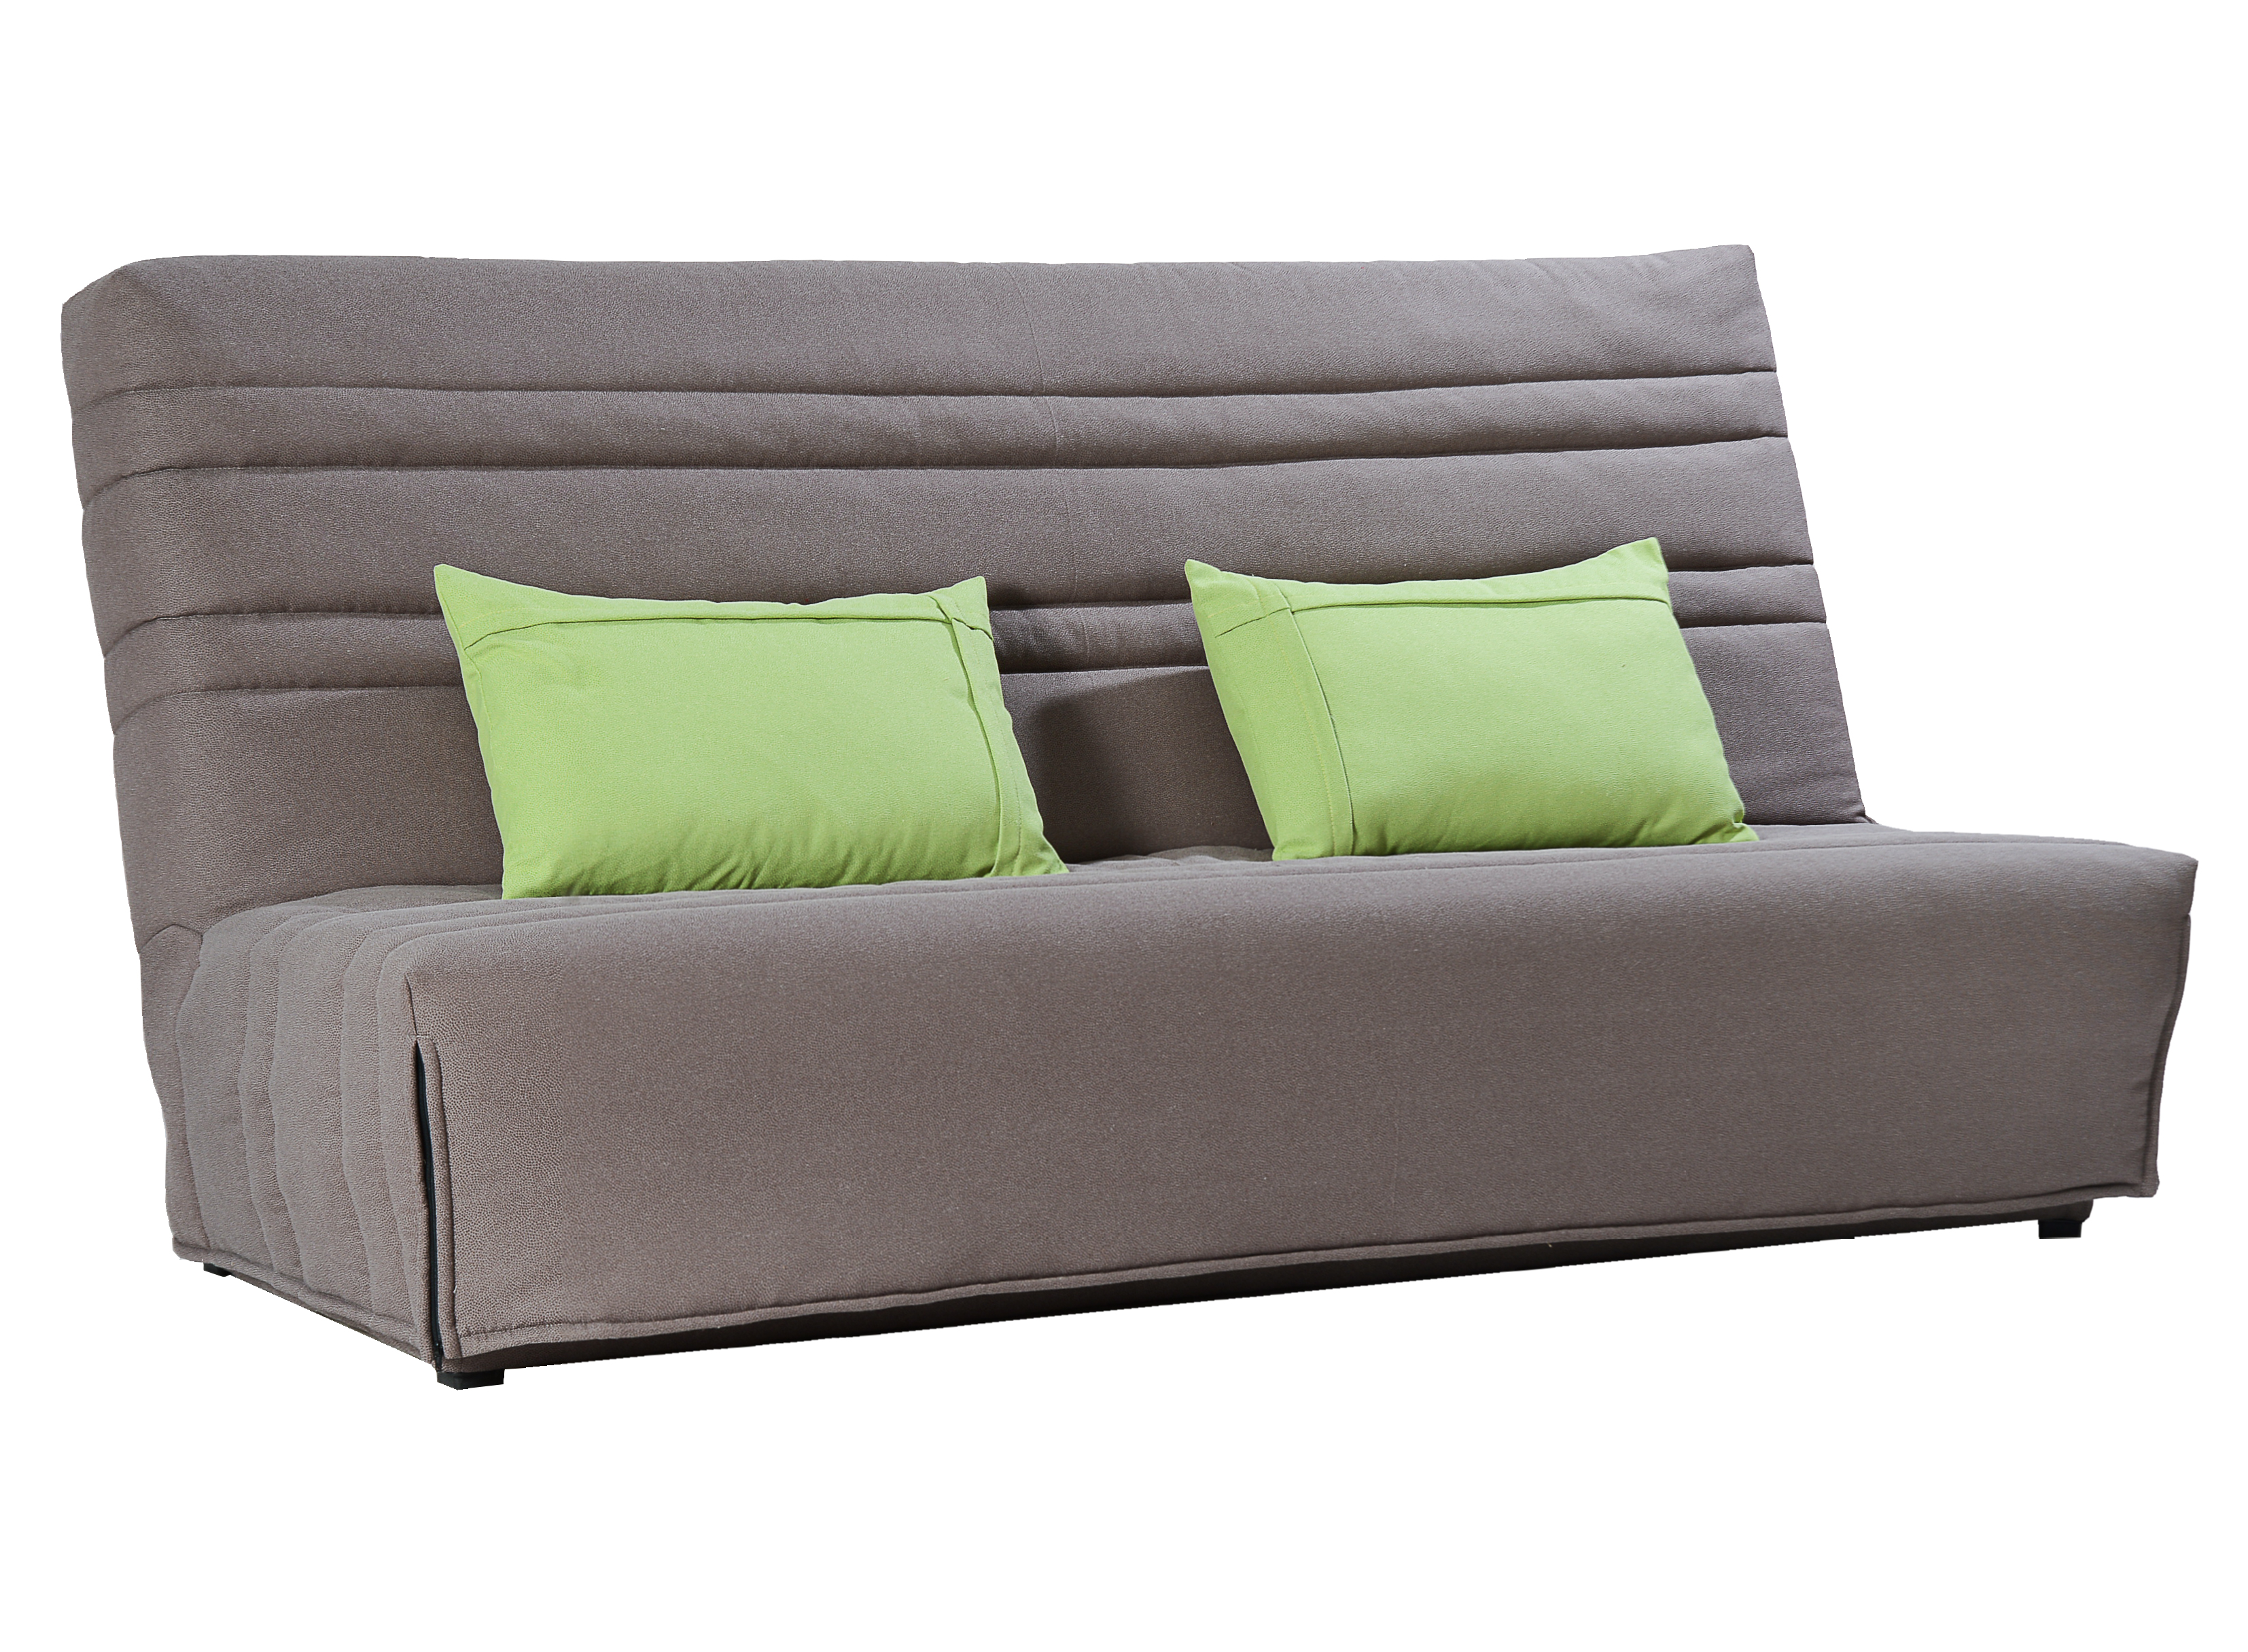 Bz clic clac gamme nad urban confort nice for Canape 06000